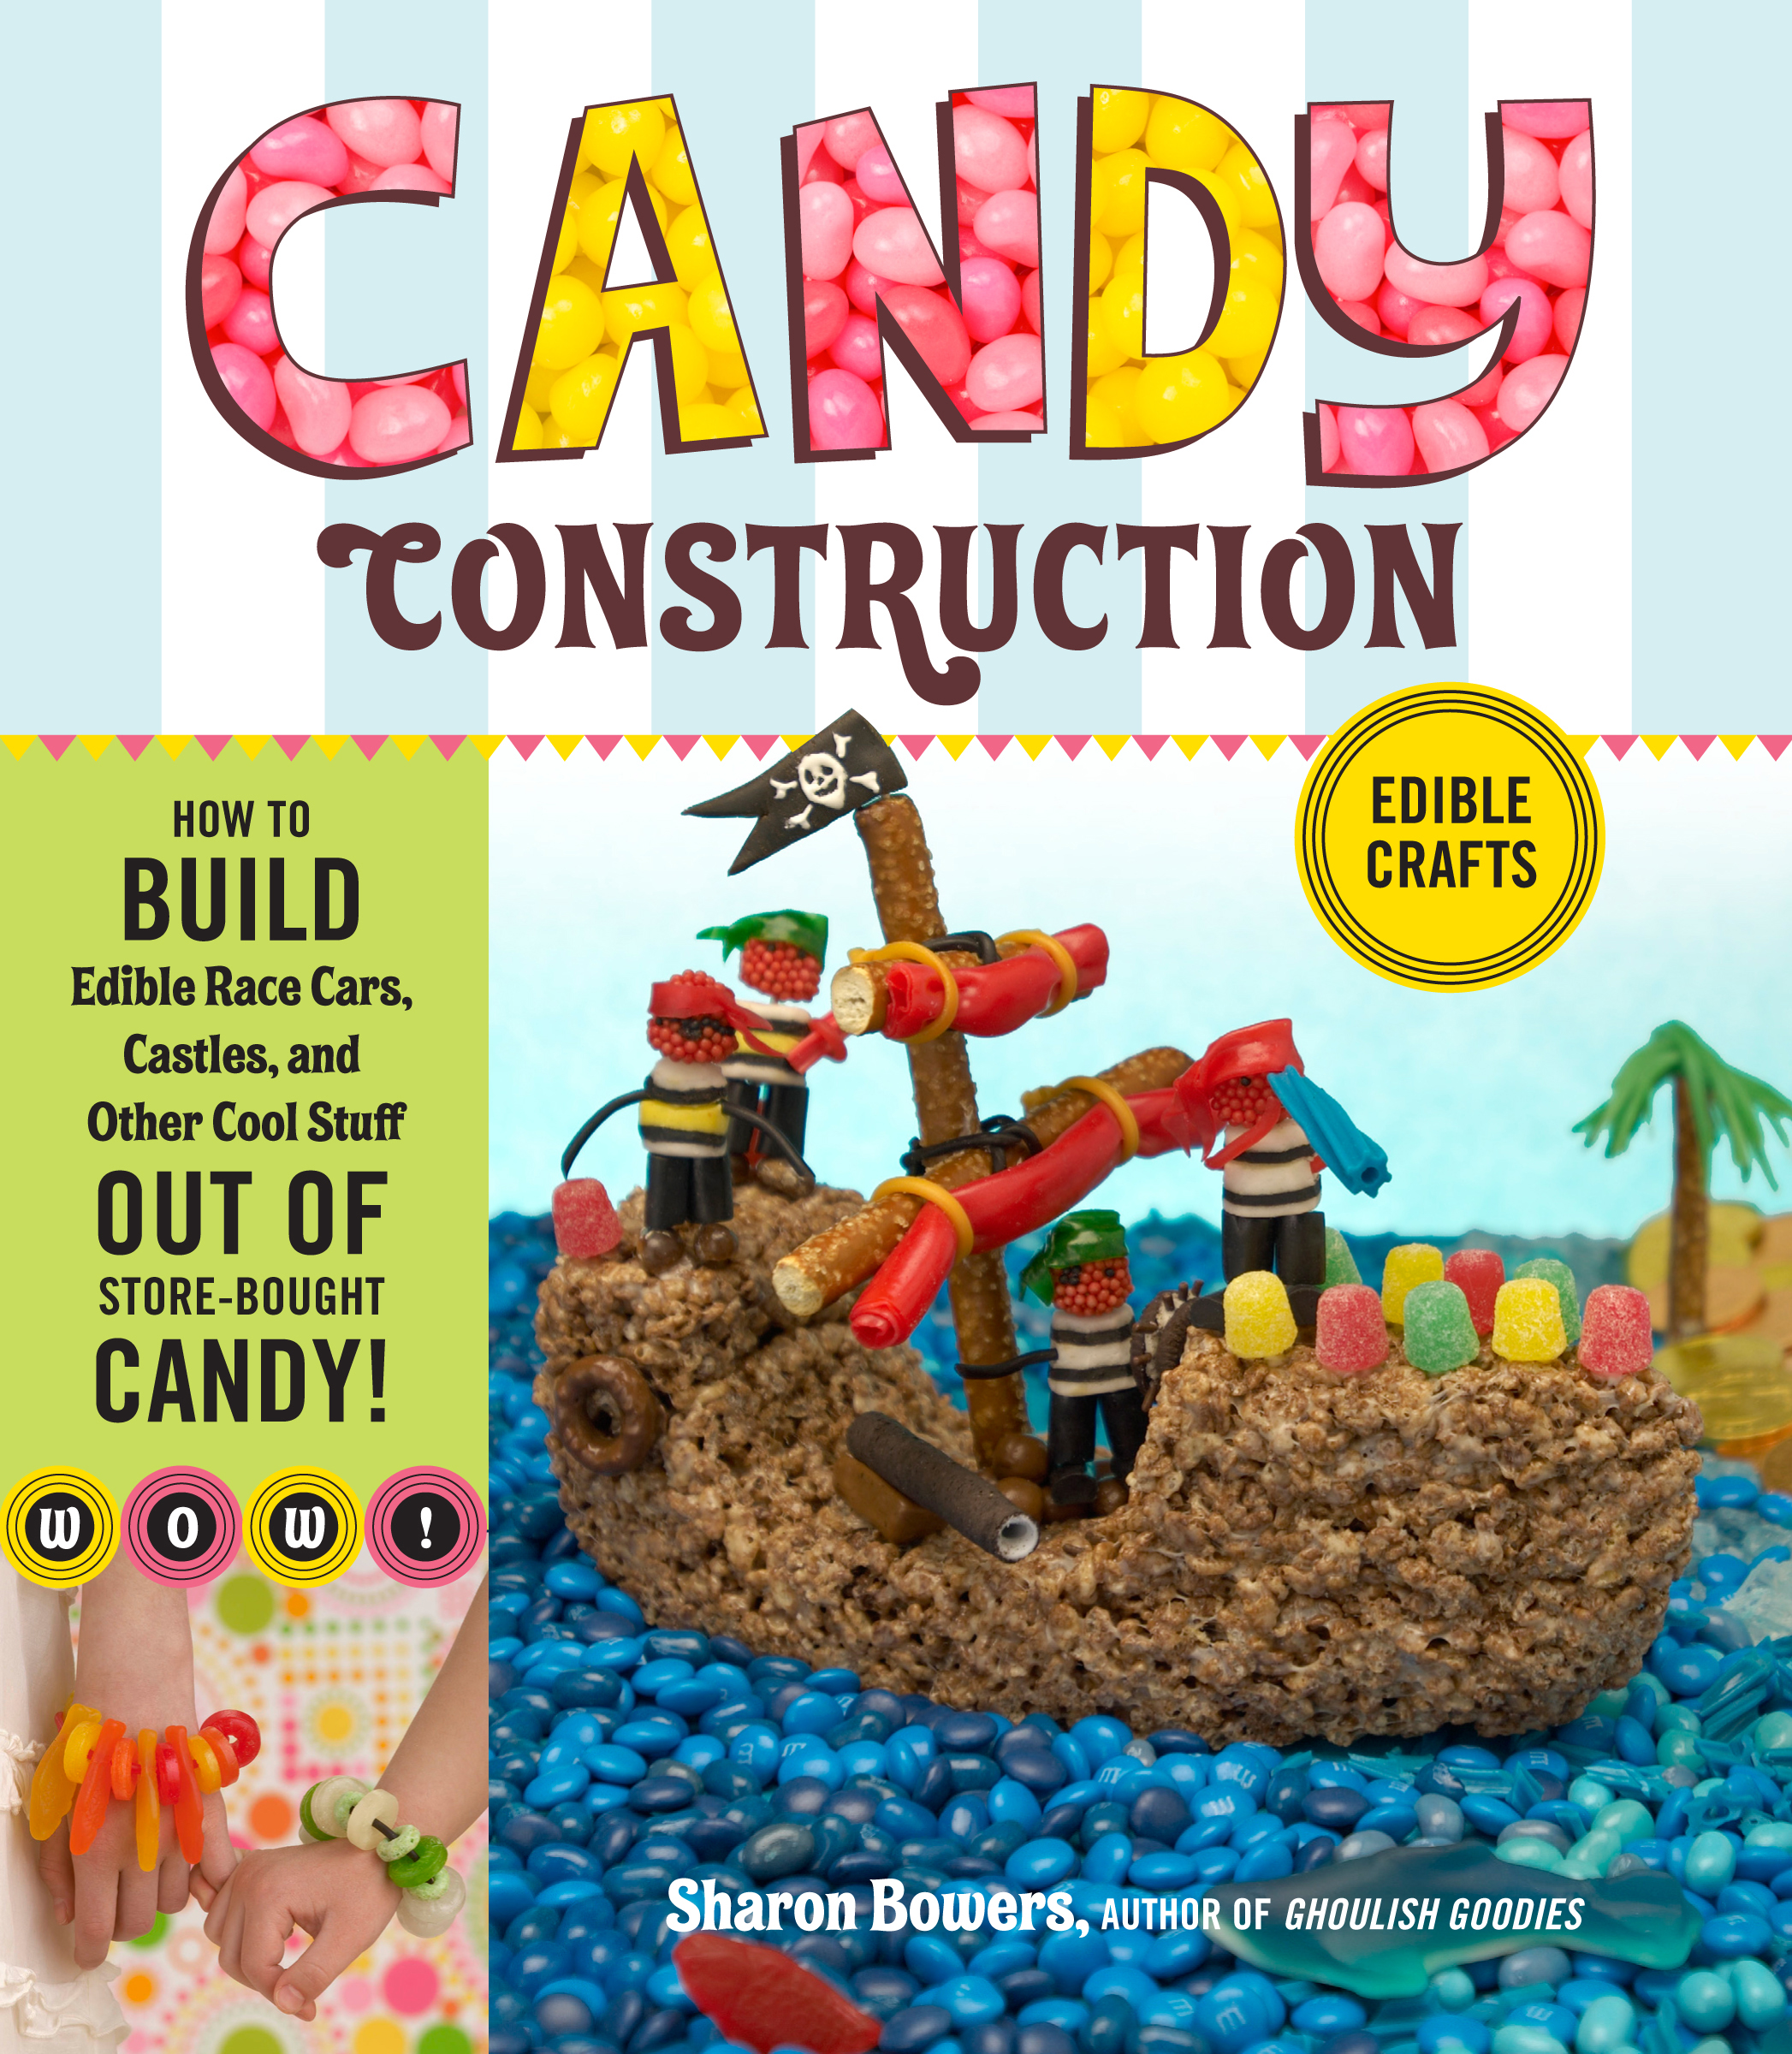 Candy Construction How to Build Race Cars, Castles, and Other Cool Stuff out of Store-Bought Candy - Sharon Bowers